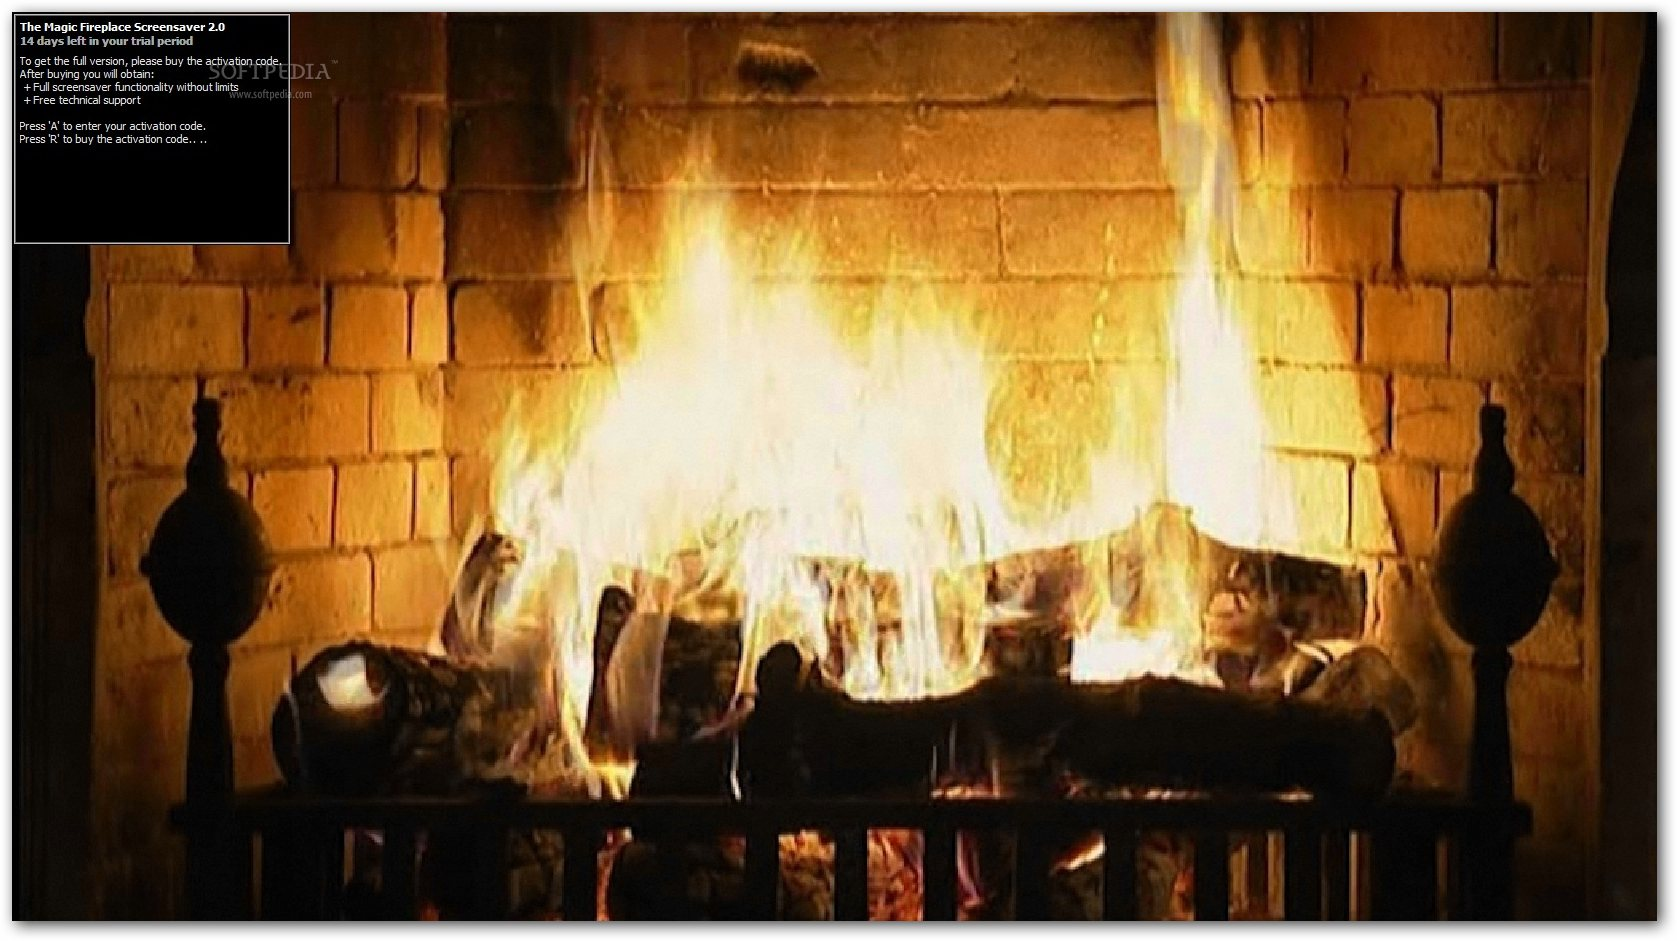 Free Download The Magic Fireplace Screensaver 2.00 - A screensaver that displays a burning fireplace